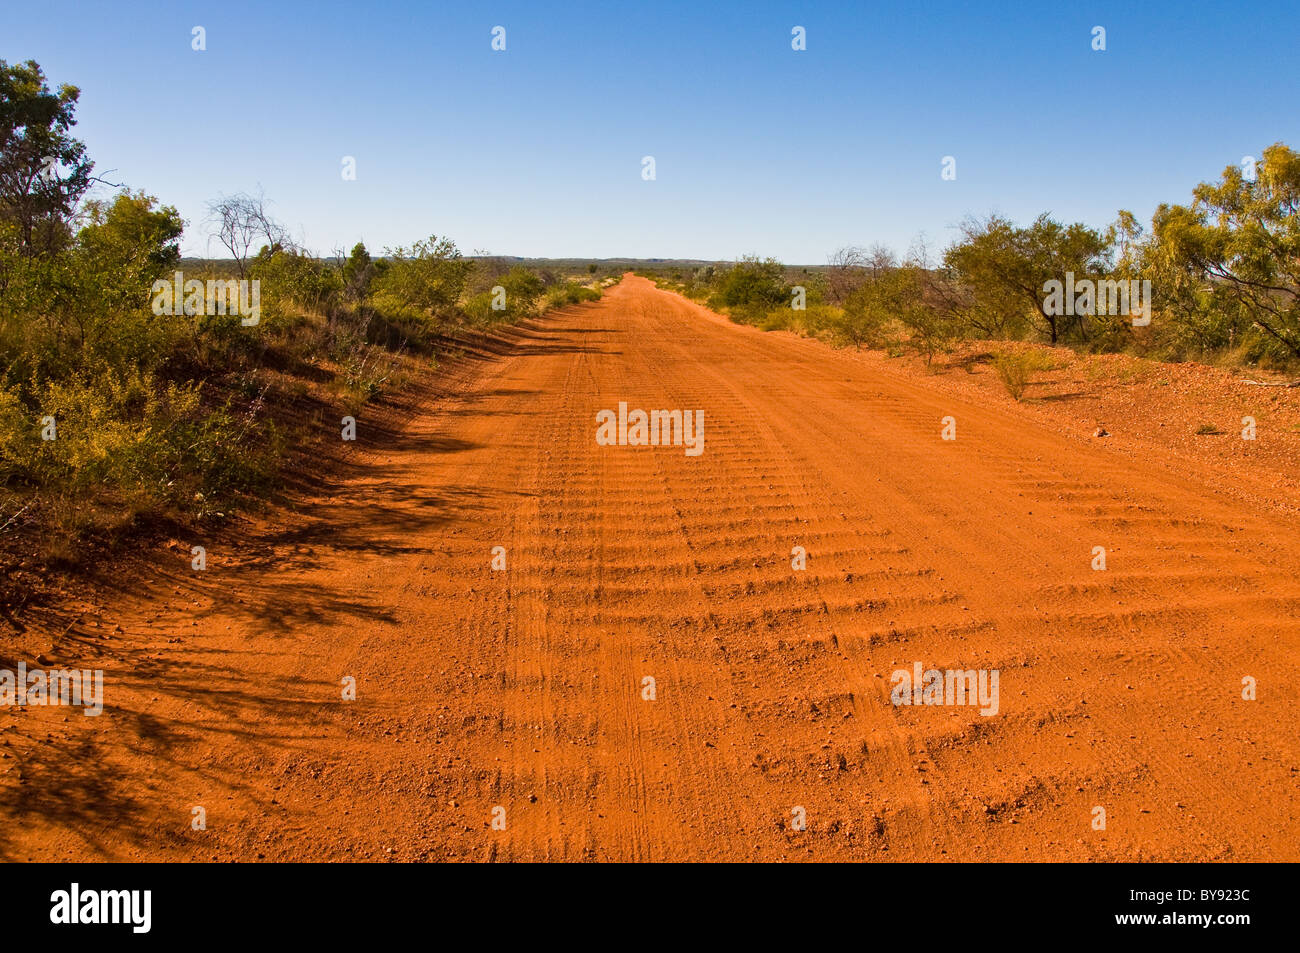 dirt road in the australian outback - Stock Image